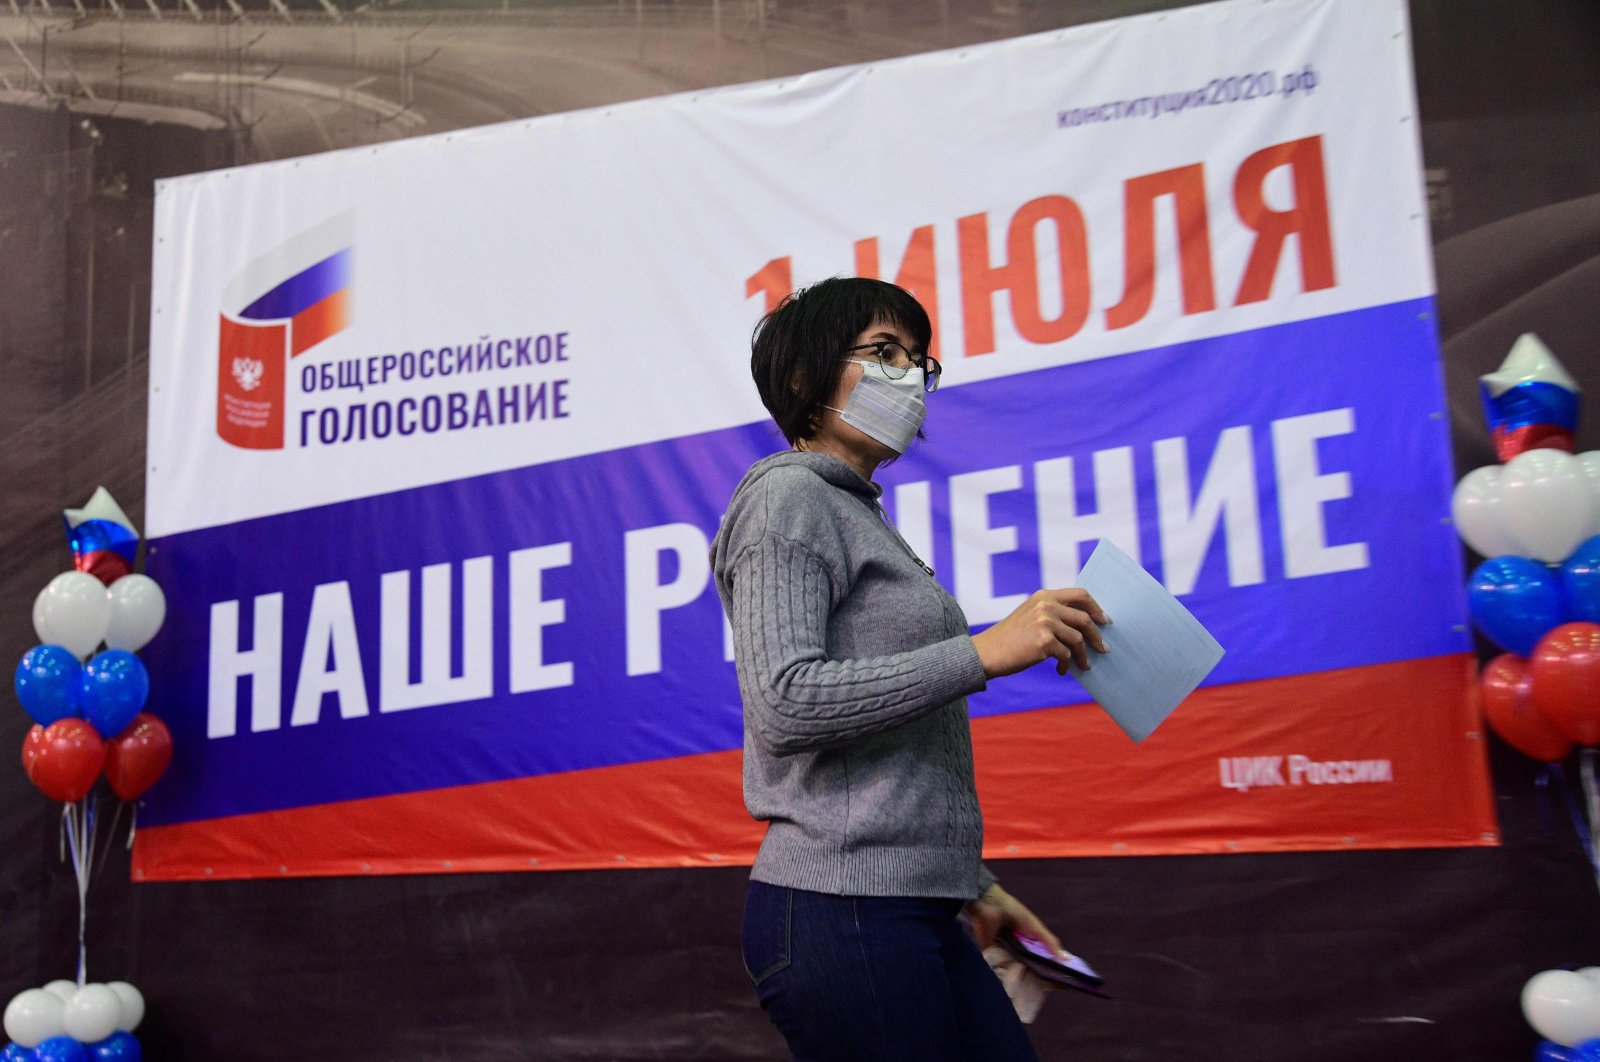 A woman casts her vote in a nationwide ballot on constitutional reforms at a polling station in Vladivostok, Russia, June 25, 2020. (AFP Photo)